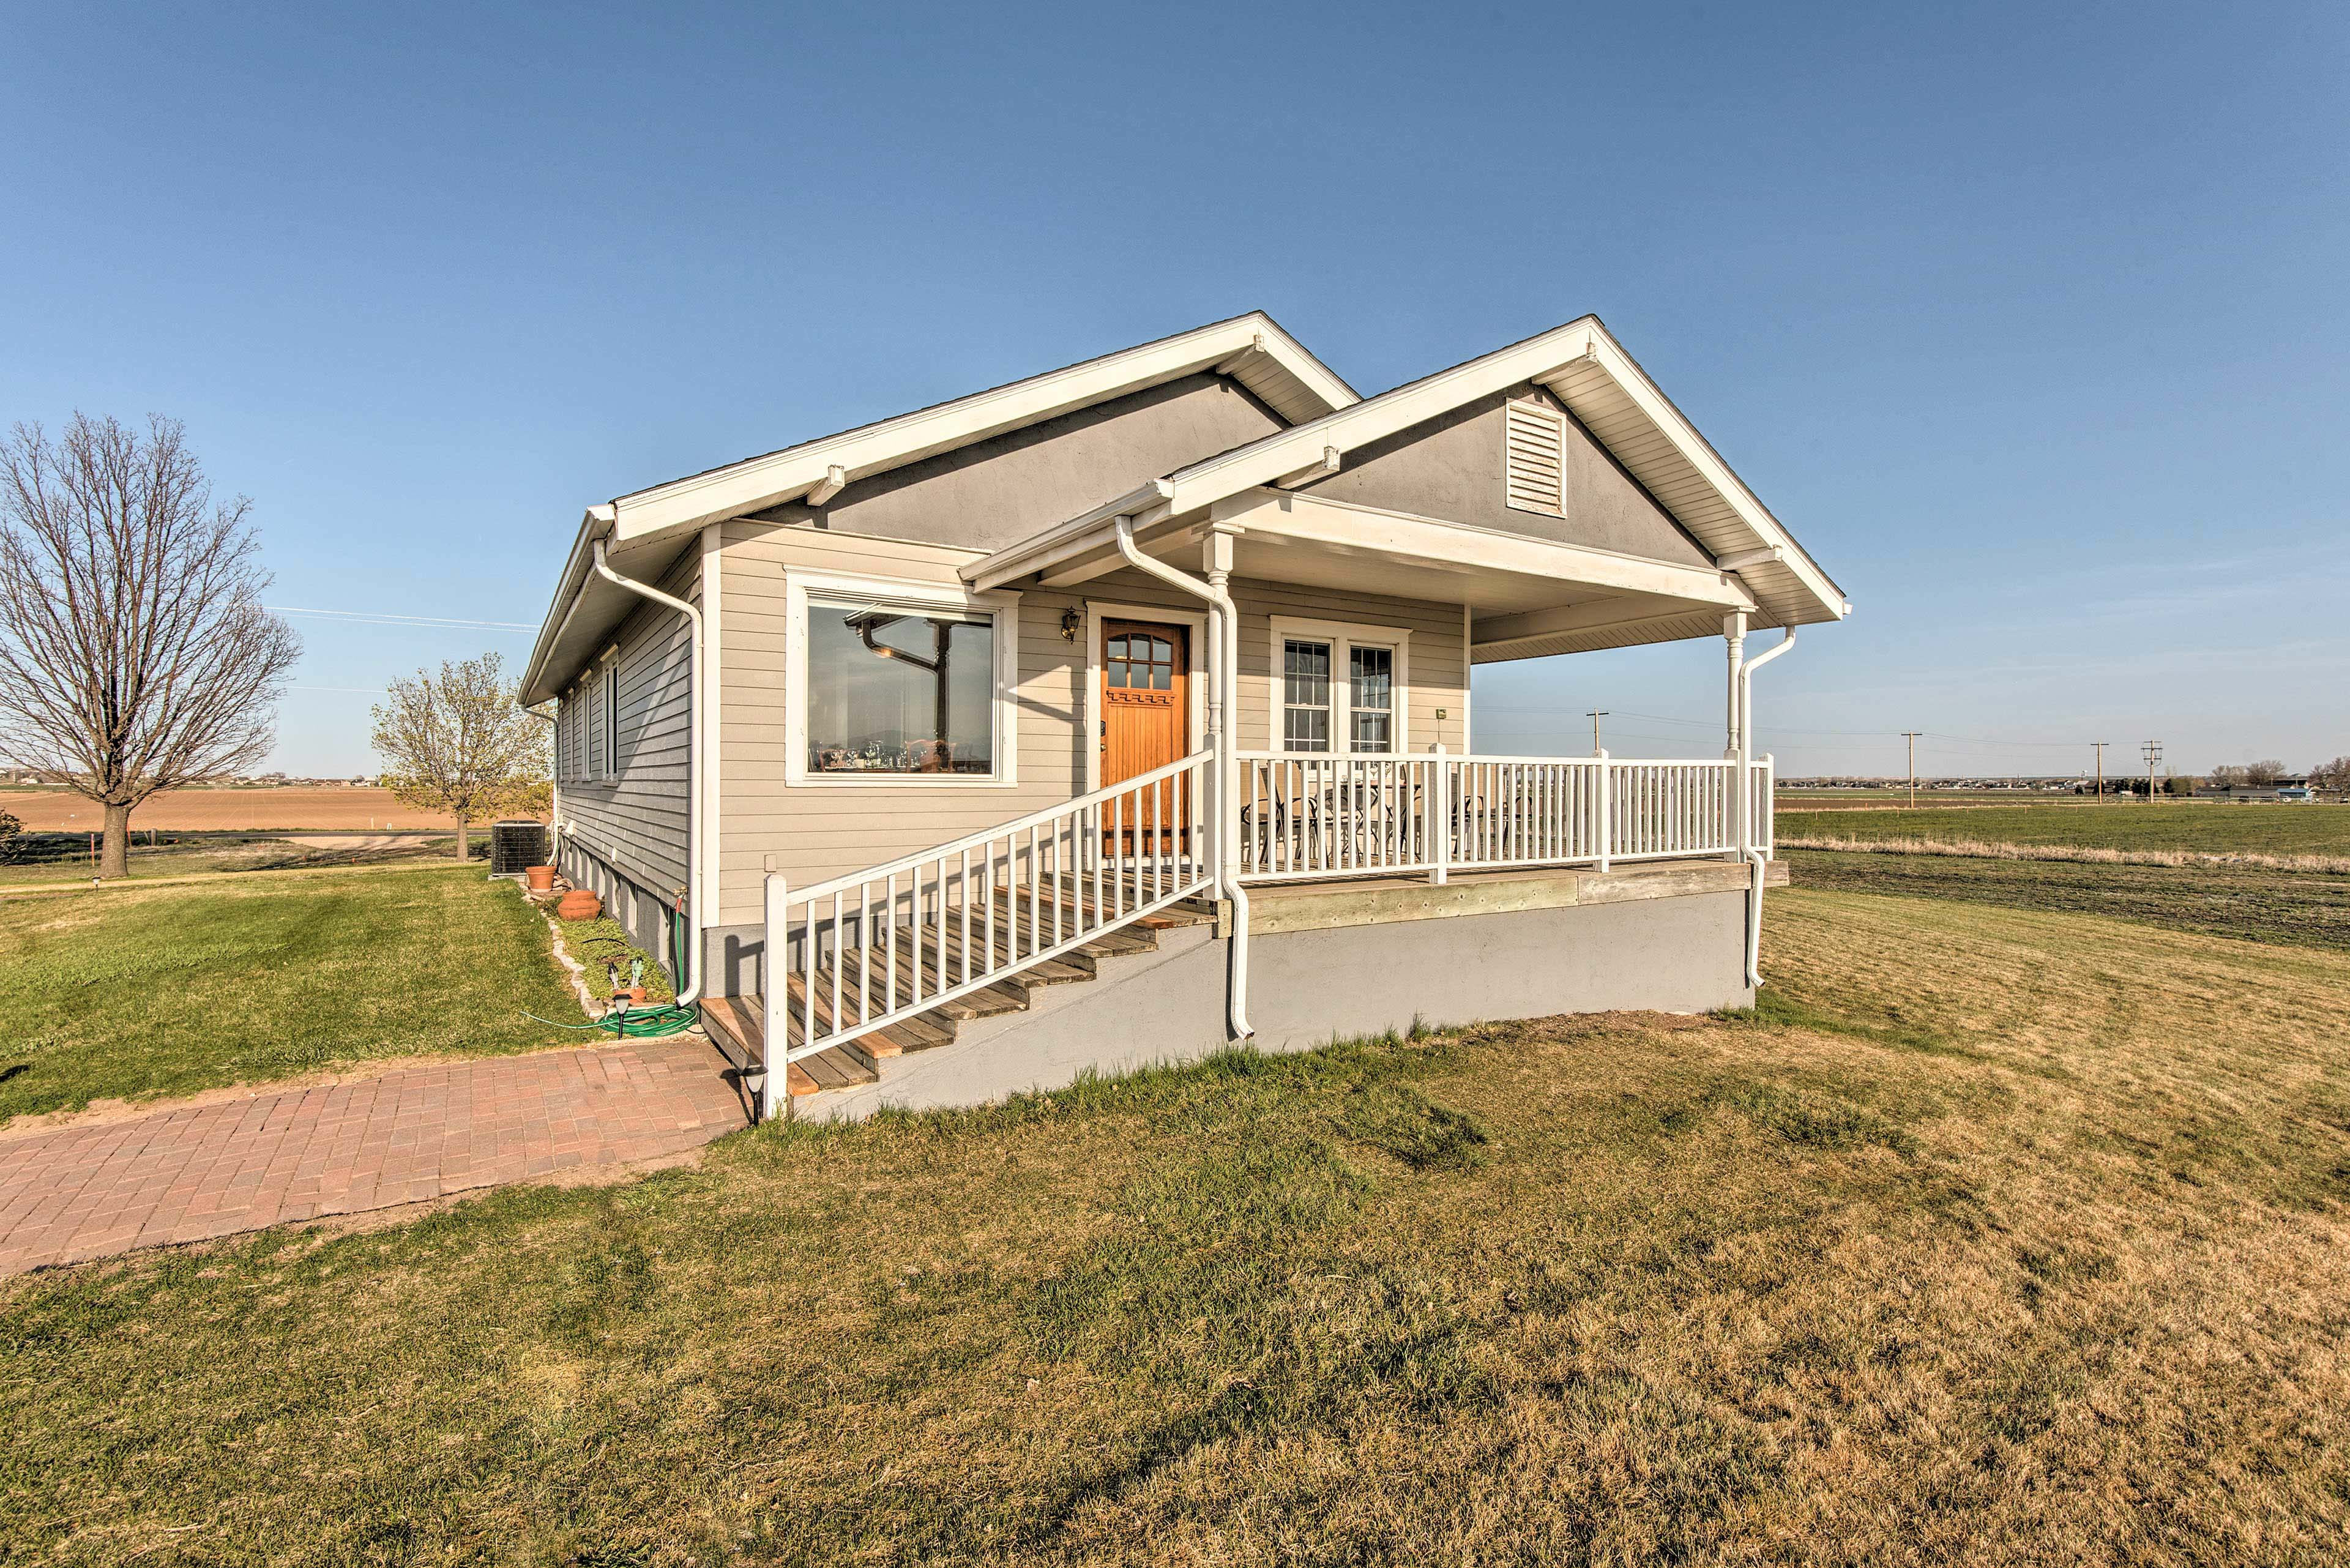 This beautiful bungalow boasts several terrific amenities!